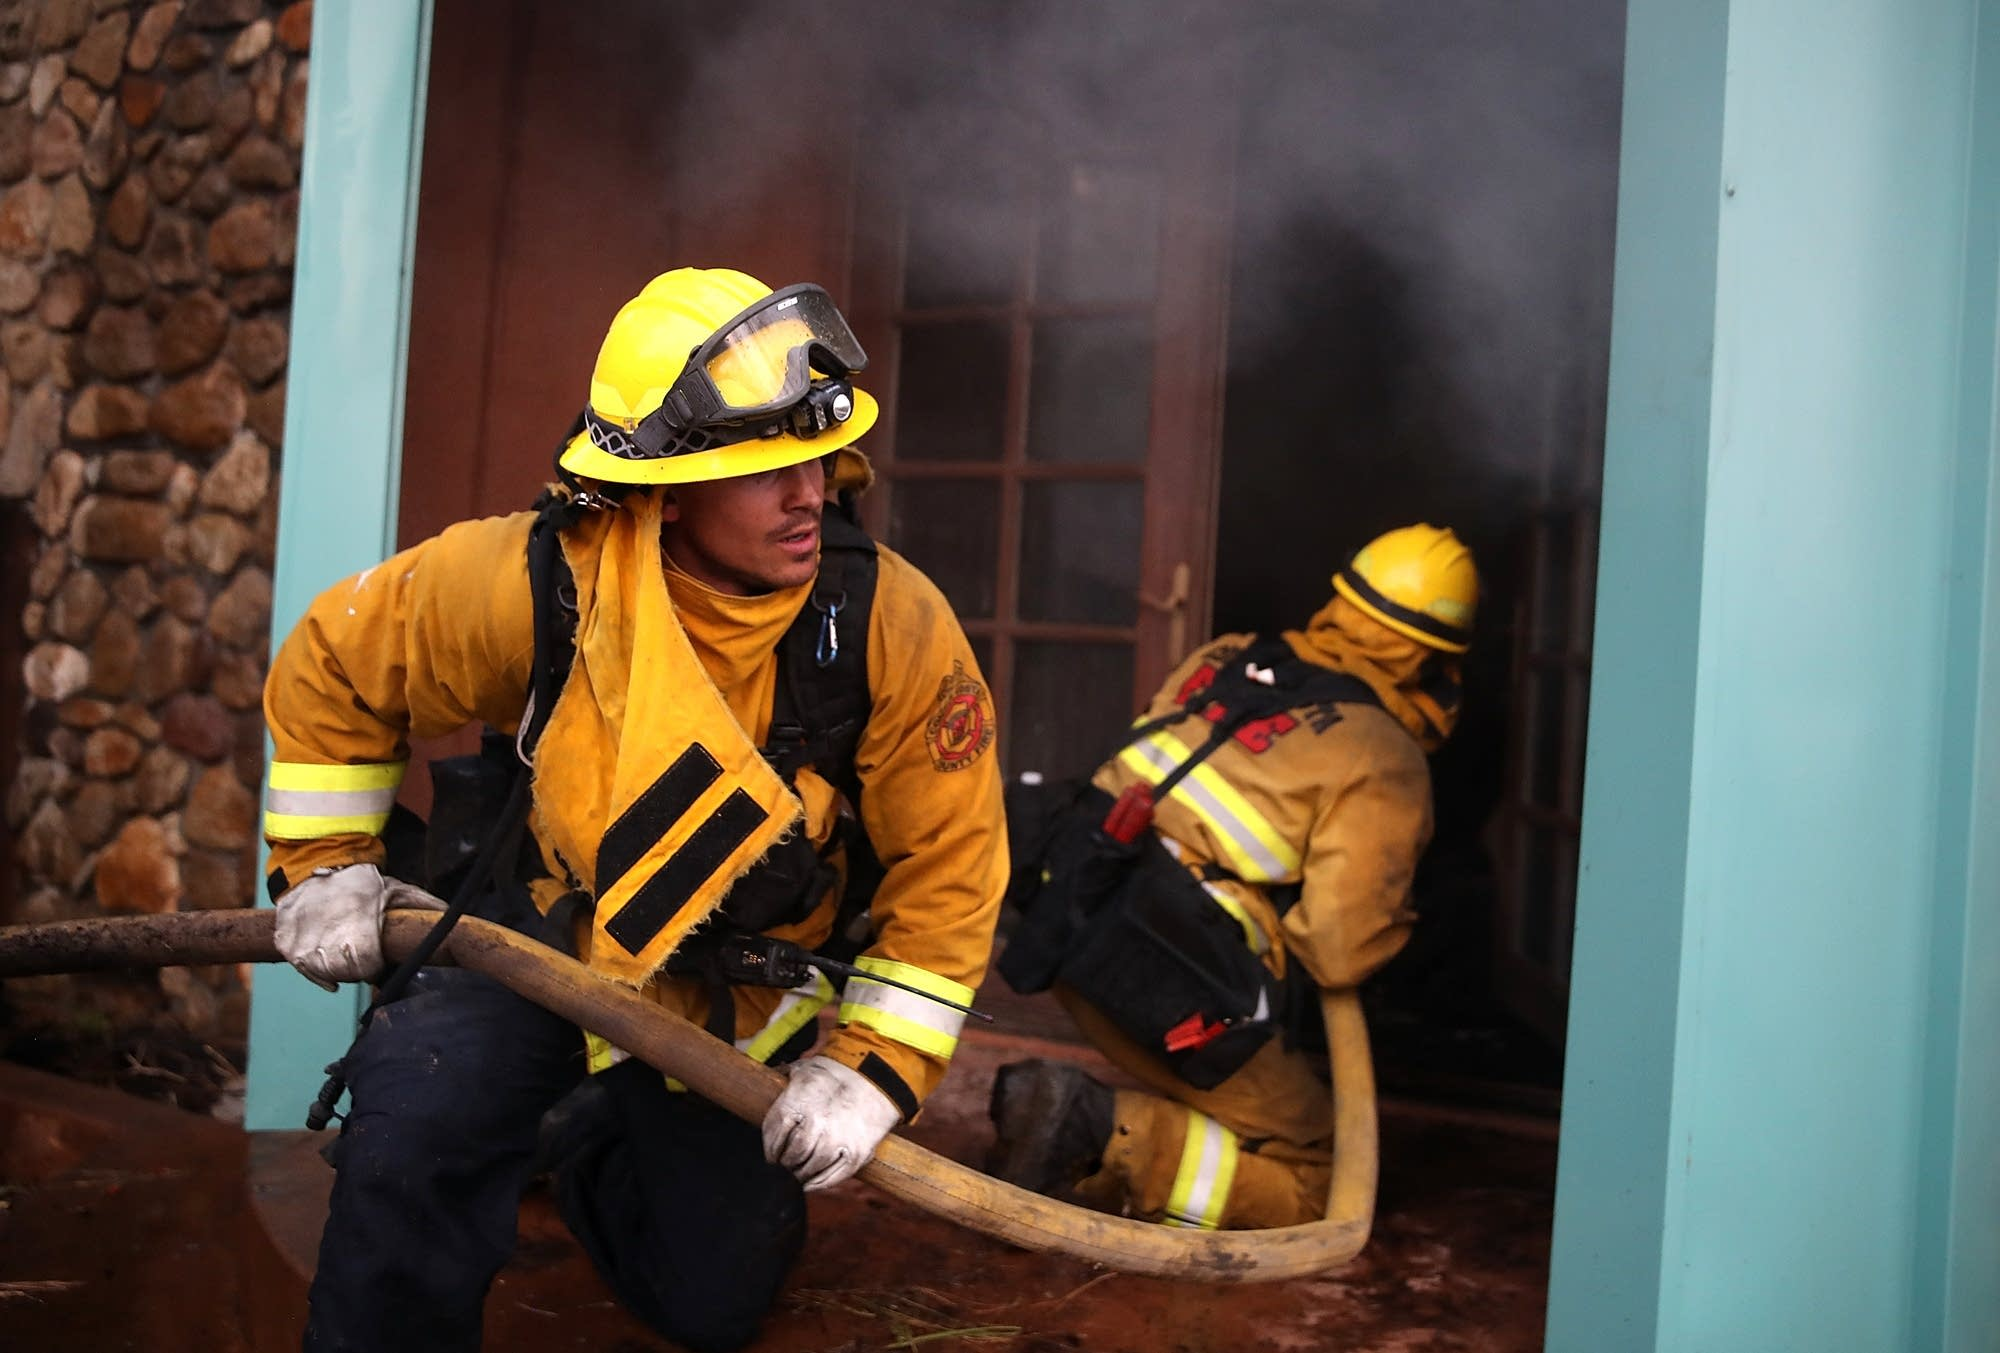 Firefighters try to extinguish a house fire.